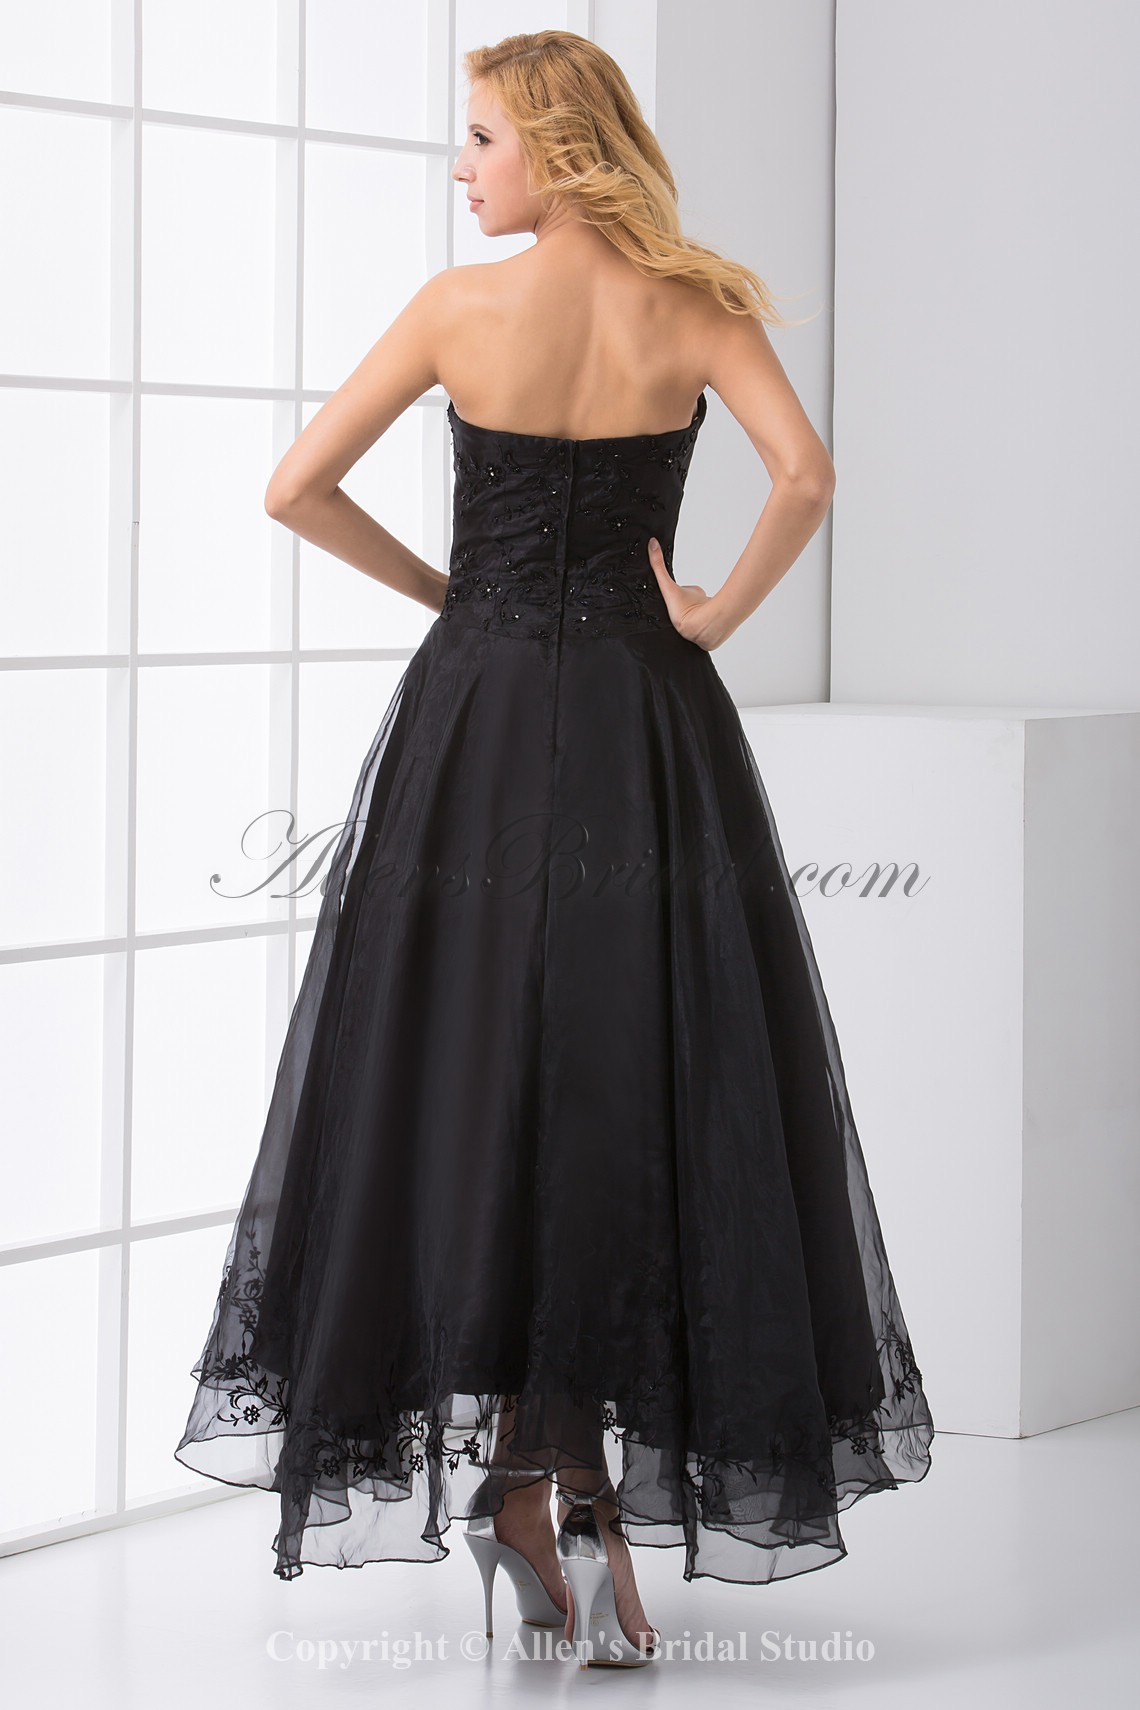 /177-1414/organza-sweetheart-a-line-ankle-length-embroidered-prom-dress.jpg